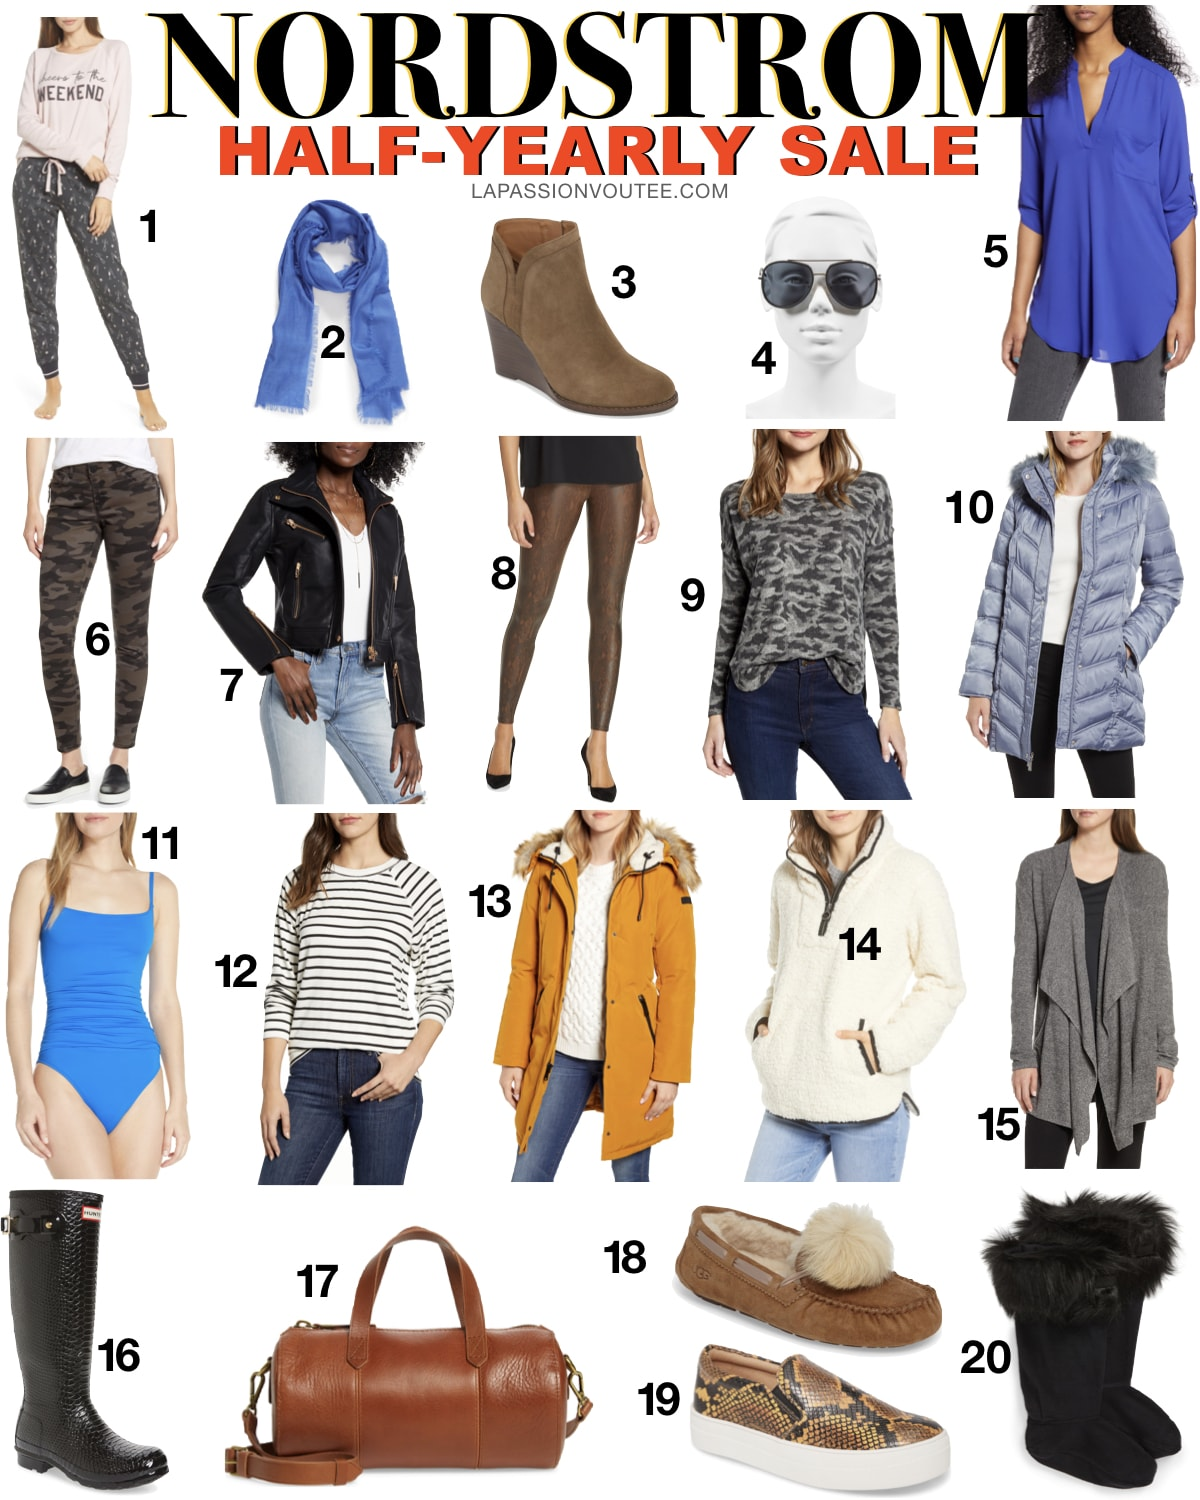 These are the best Nordstrom Half-Yearly Sale picks to seriously consider this year. There's so much good stuff happening during this Nordstrom Sale. These are the best fashion finds from brands like Tory Burch, Barefoot Dreams, UGG, Zella, and more. #nordstrom #nordstromsale